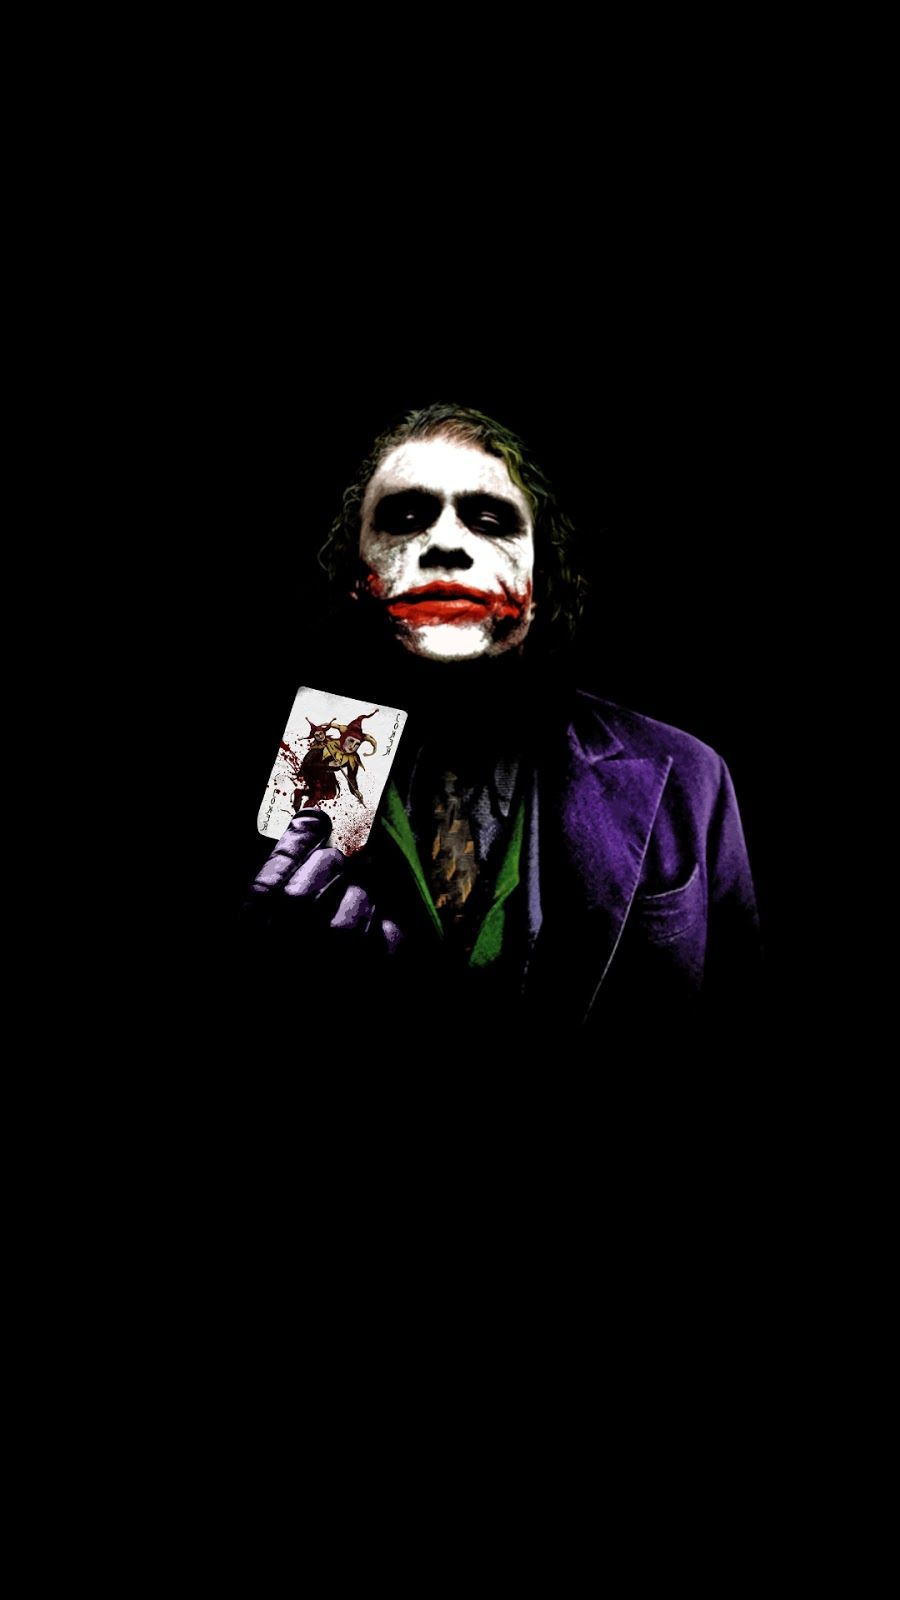 Deliligin Vucut Bulmus Hali Joker Iphone Wallpaper 7 Plus Dc